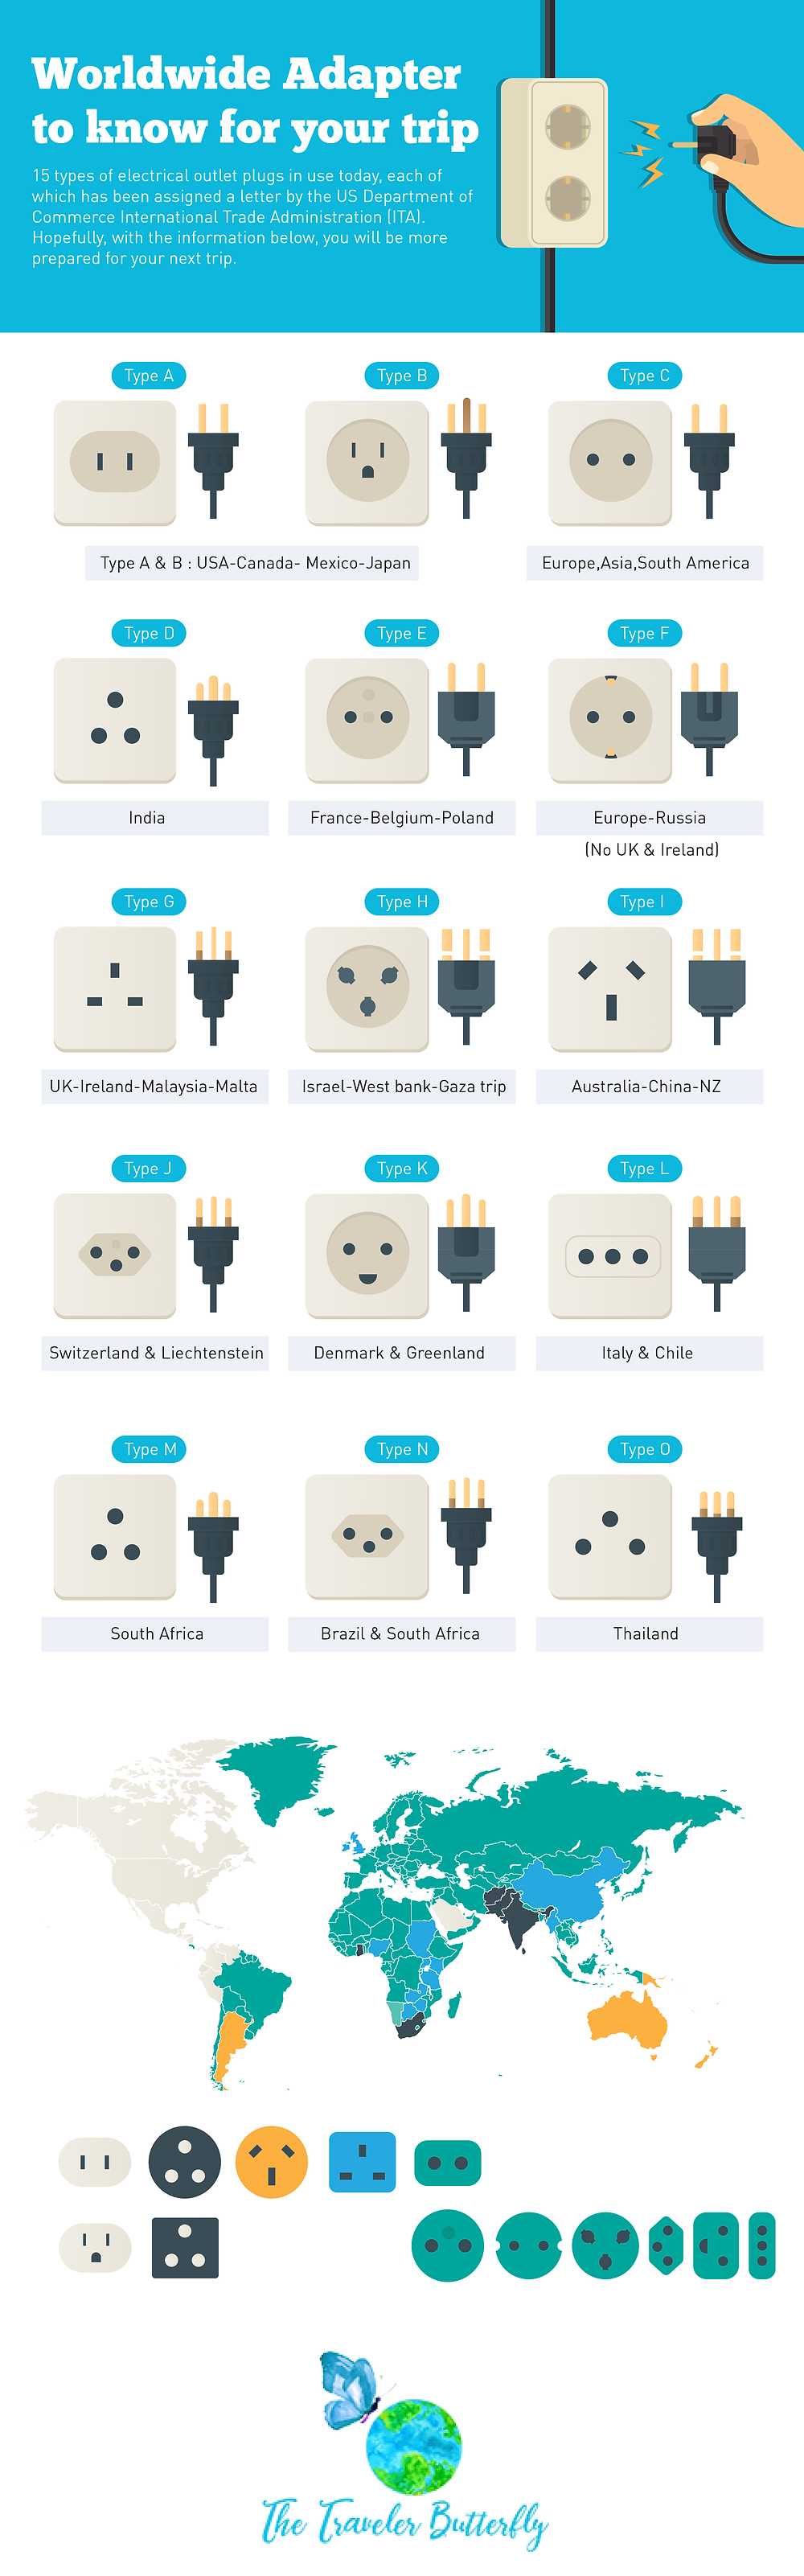 Worldwide Adapter To Know For Your Trip